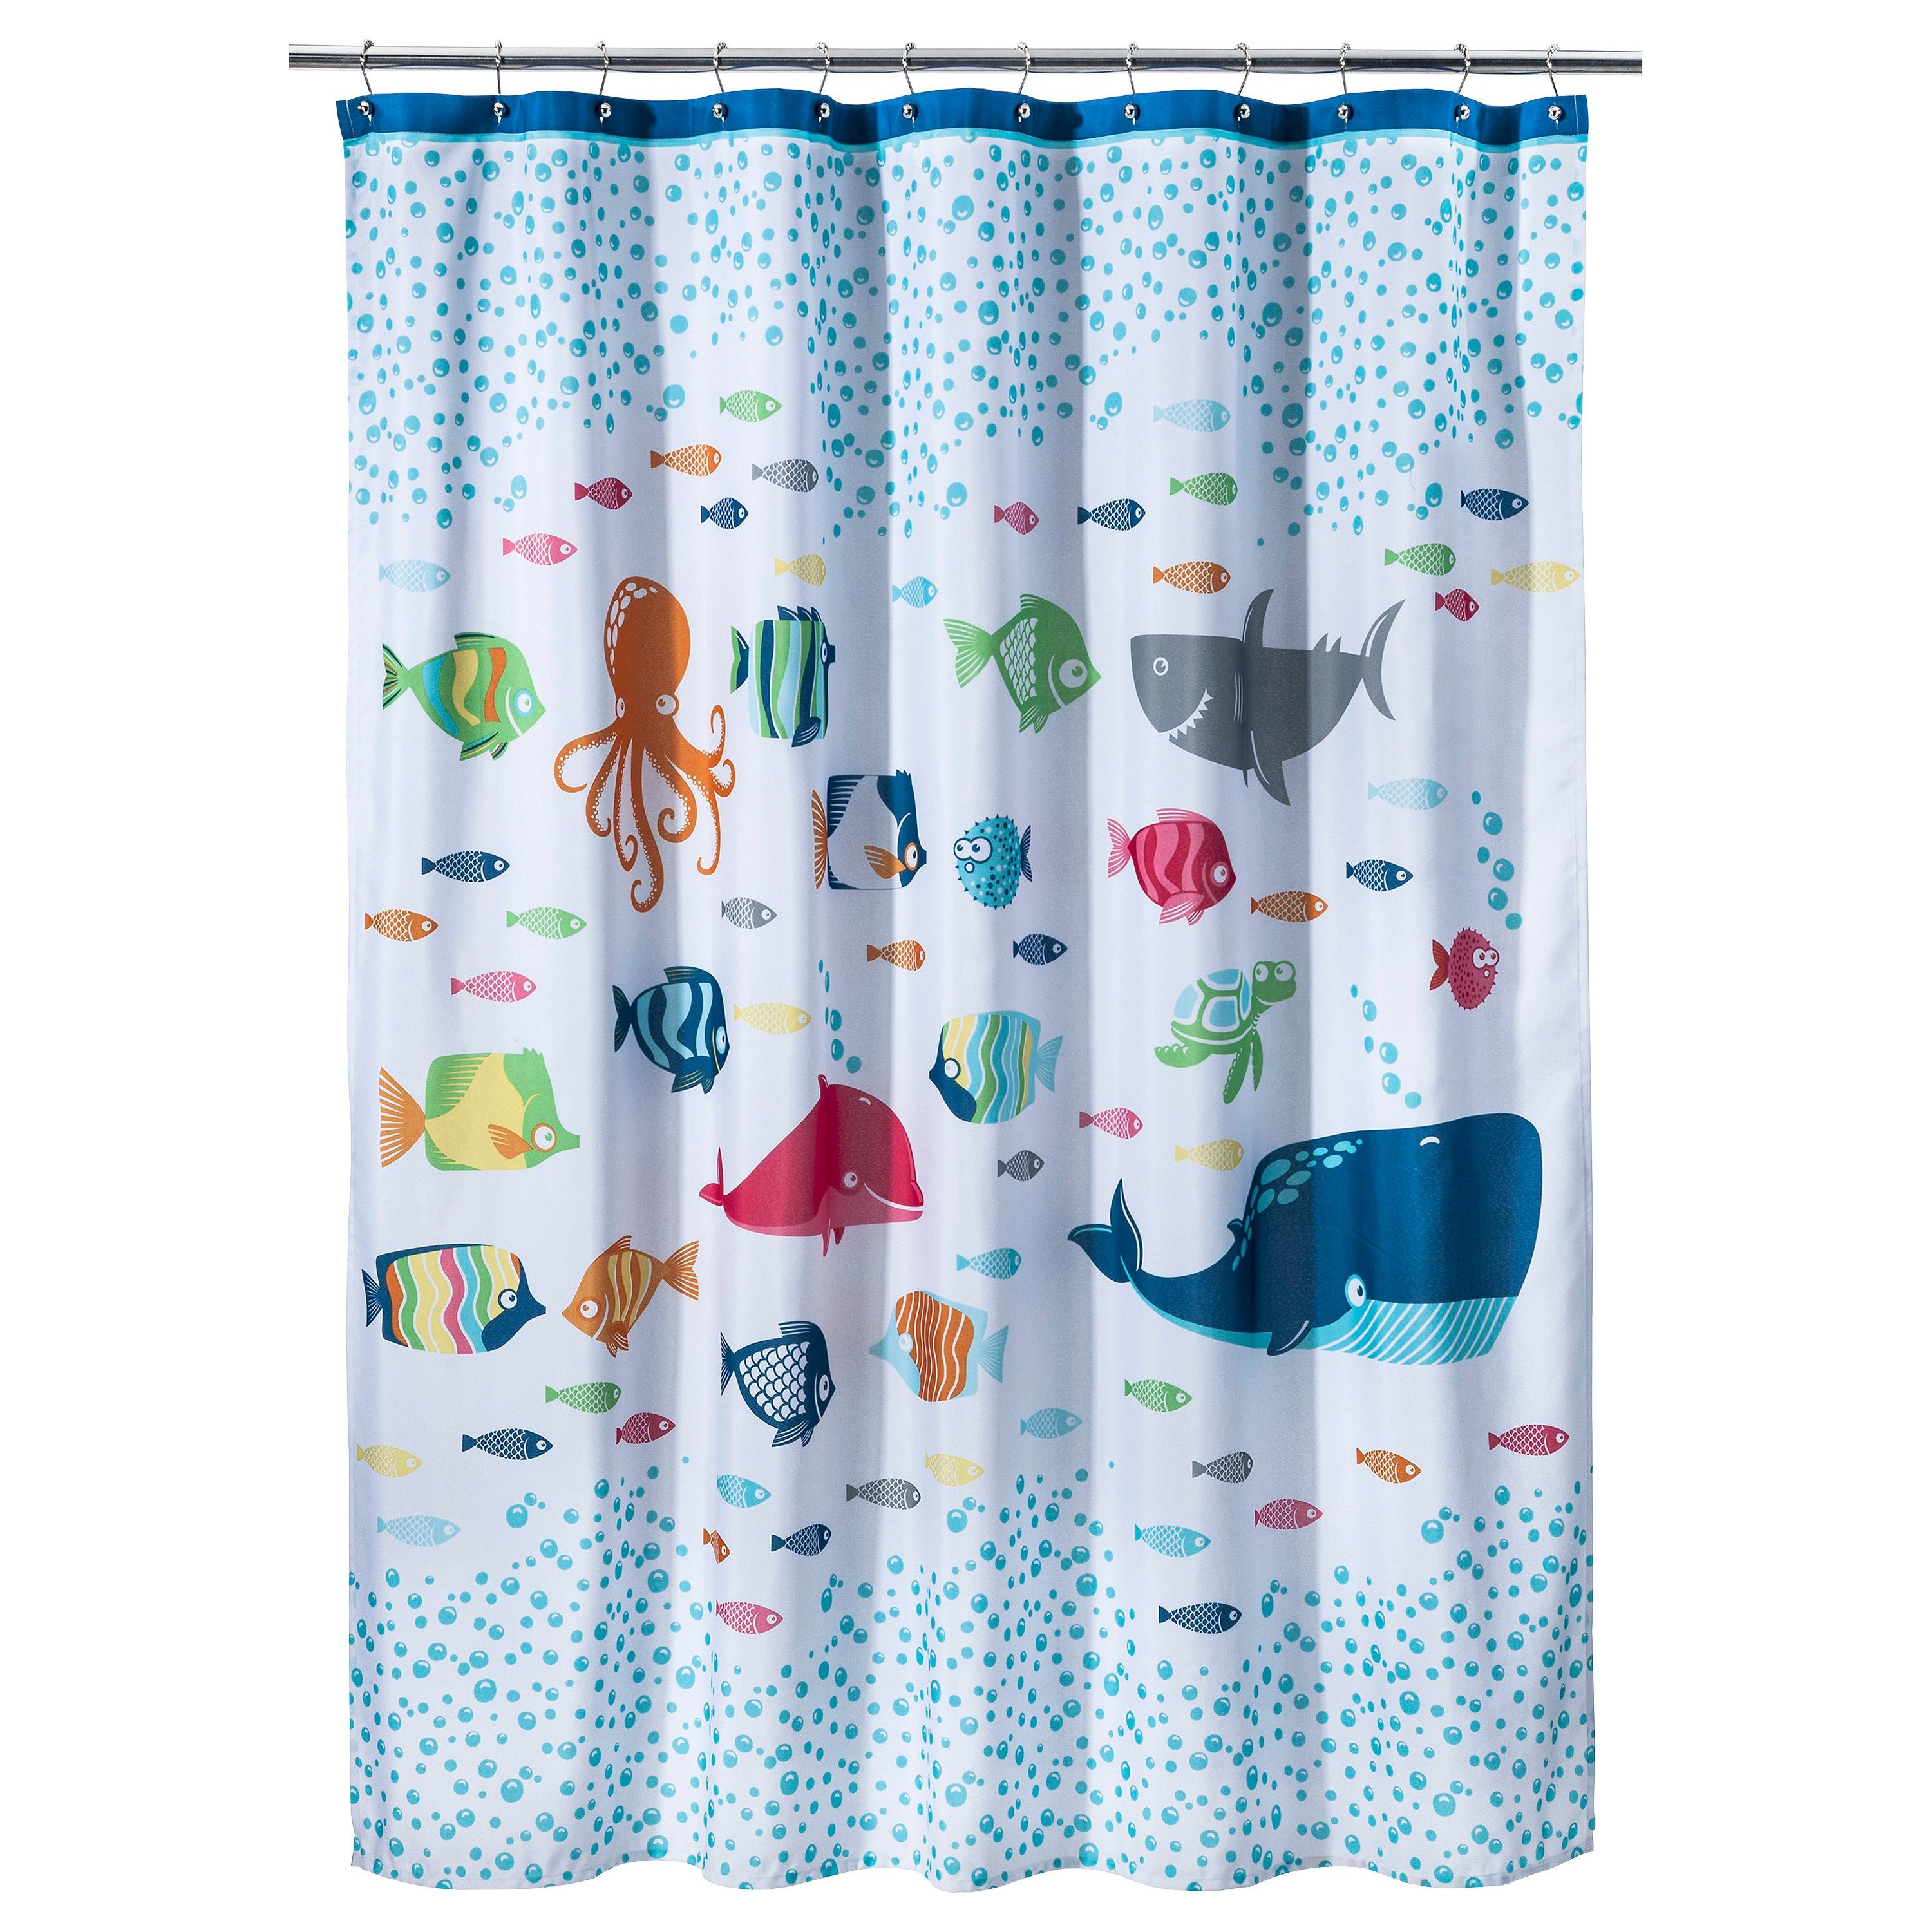 Turn Your Bathroom Into An Under The Sea Sanctuary With This Circo